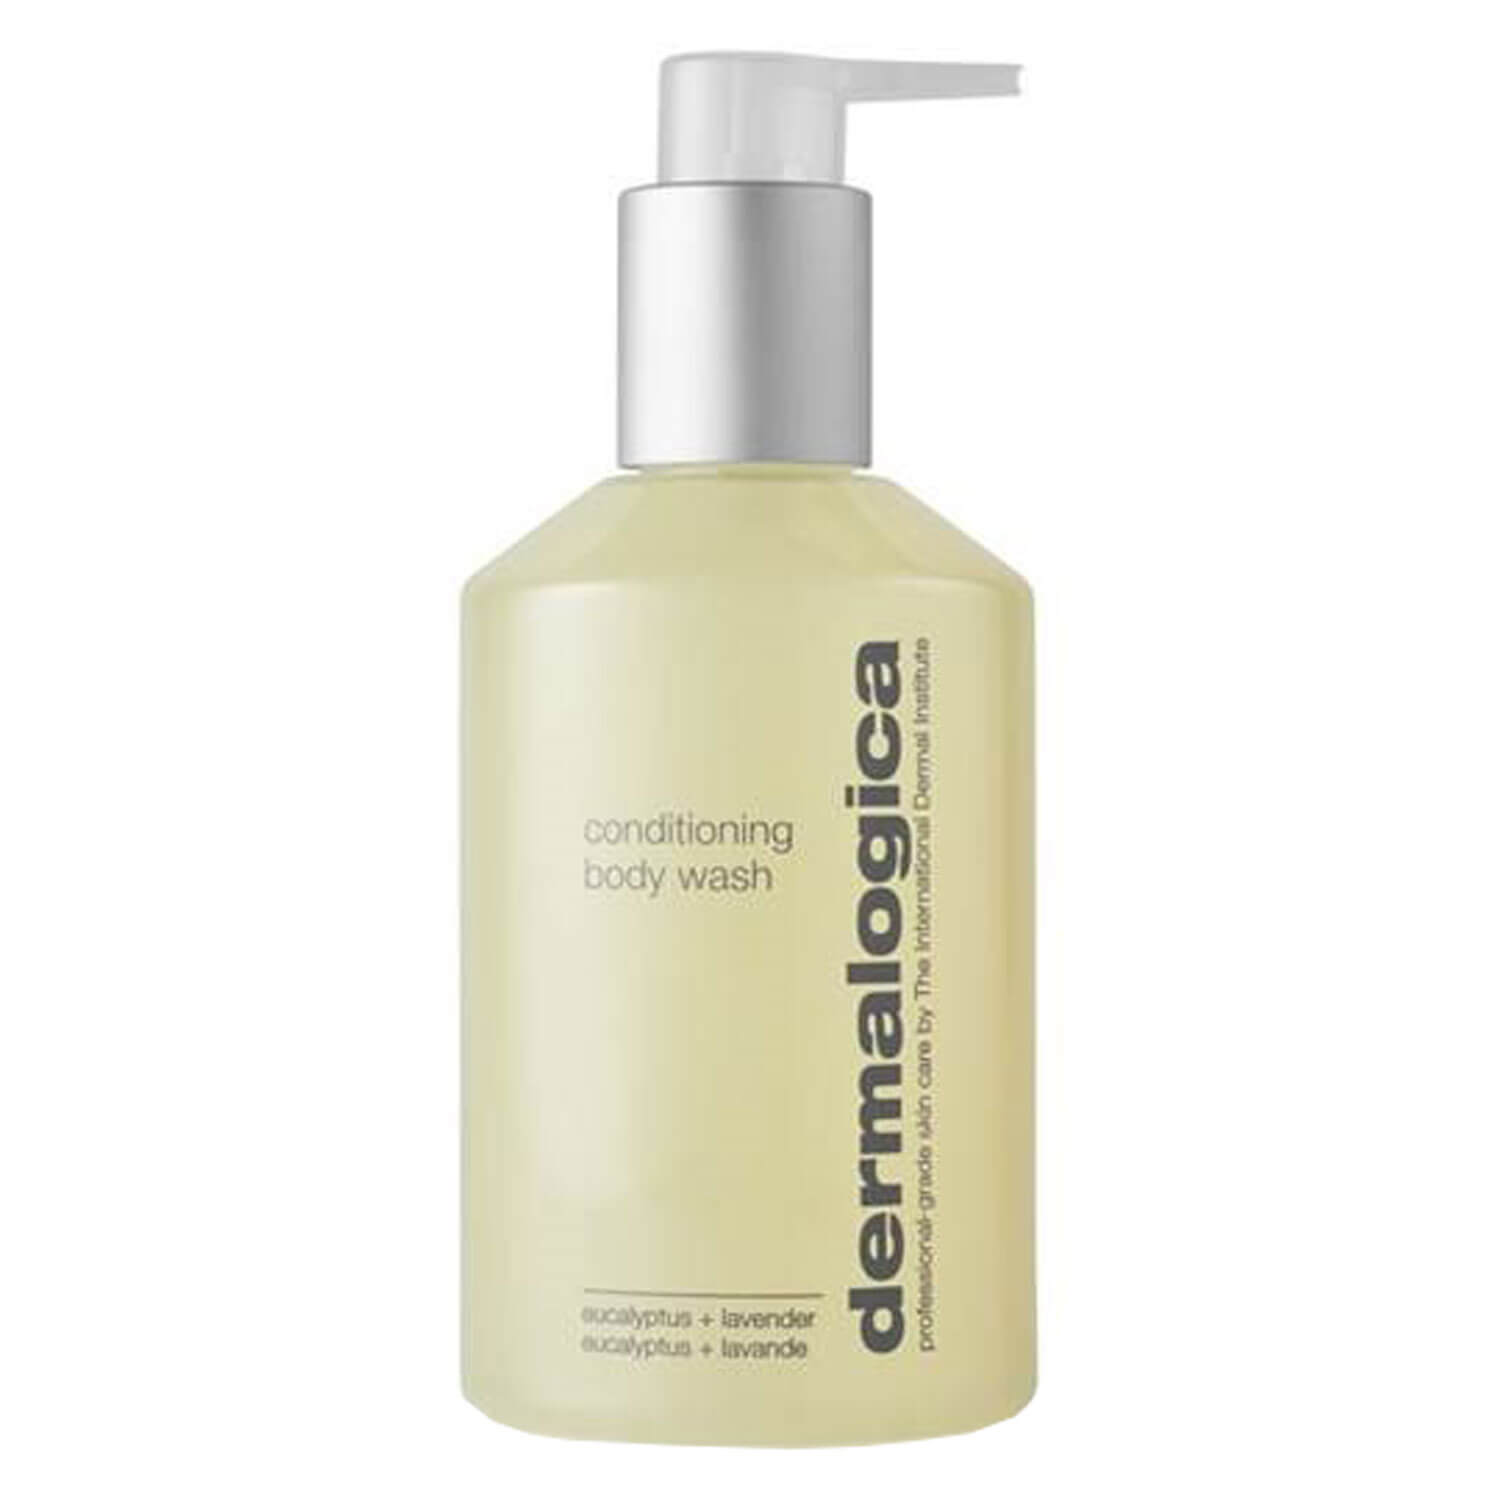 Dermalogica Body - Conditioning Body Wash